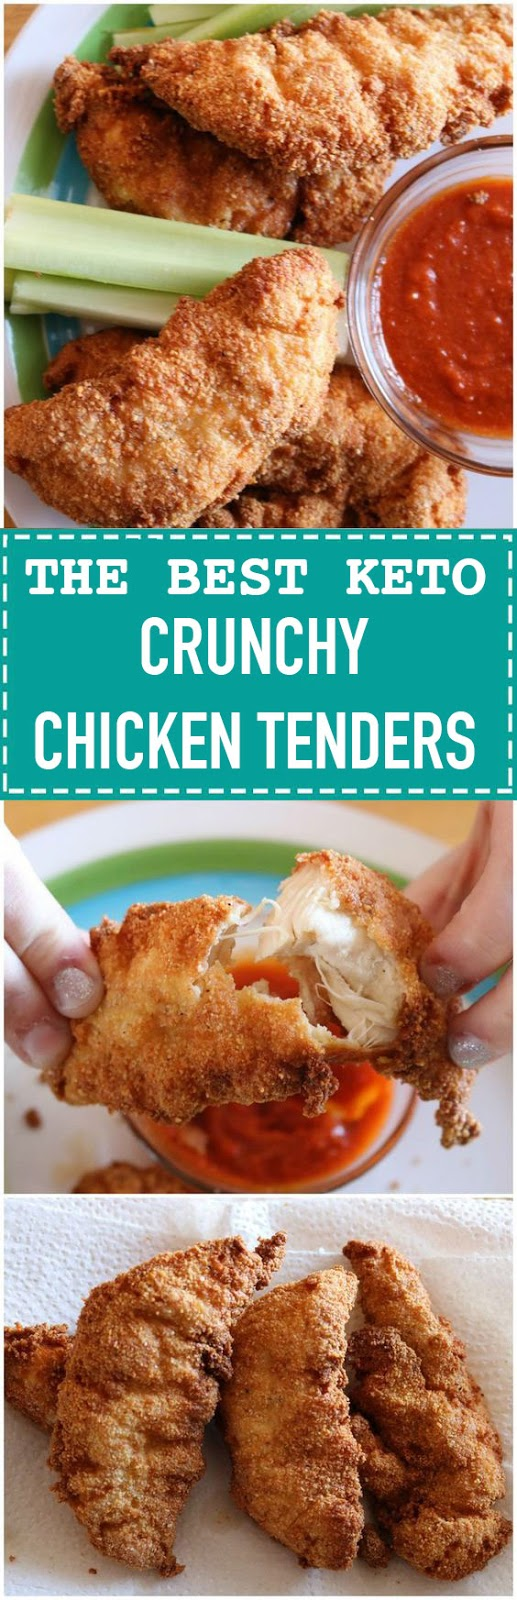 Keto Chicken Tenders